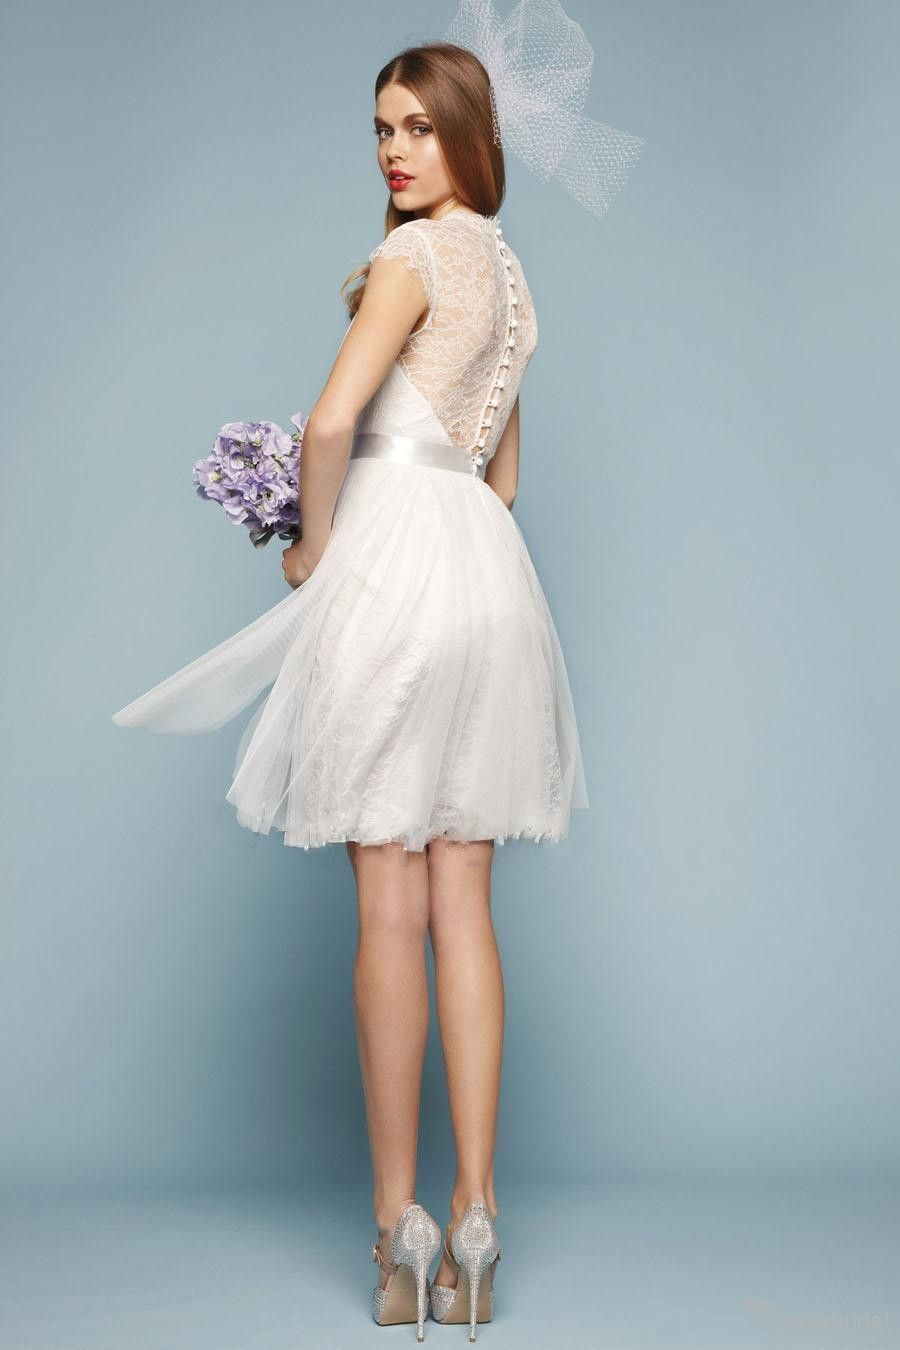 Short Wedding Dress Colors - http://www.redwatchonline.org/short ...